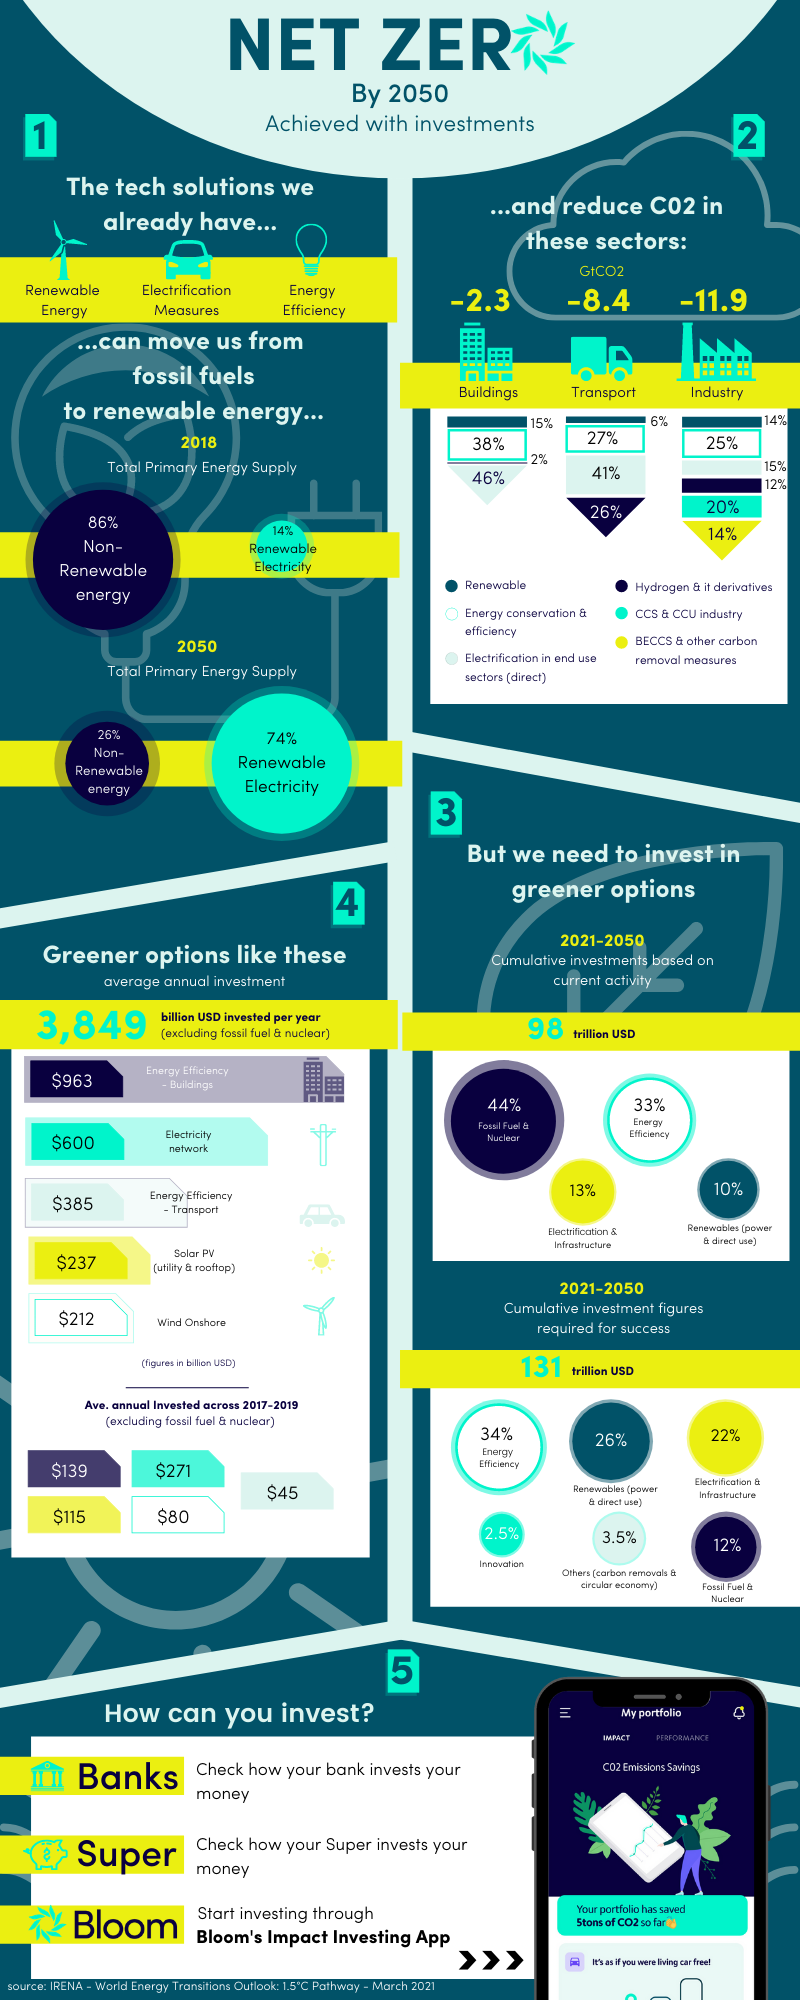 Investment guide infographic to reach Net 0 emissions globally by 2050